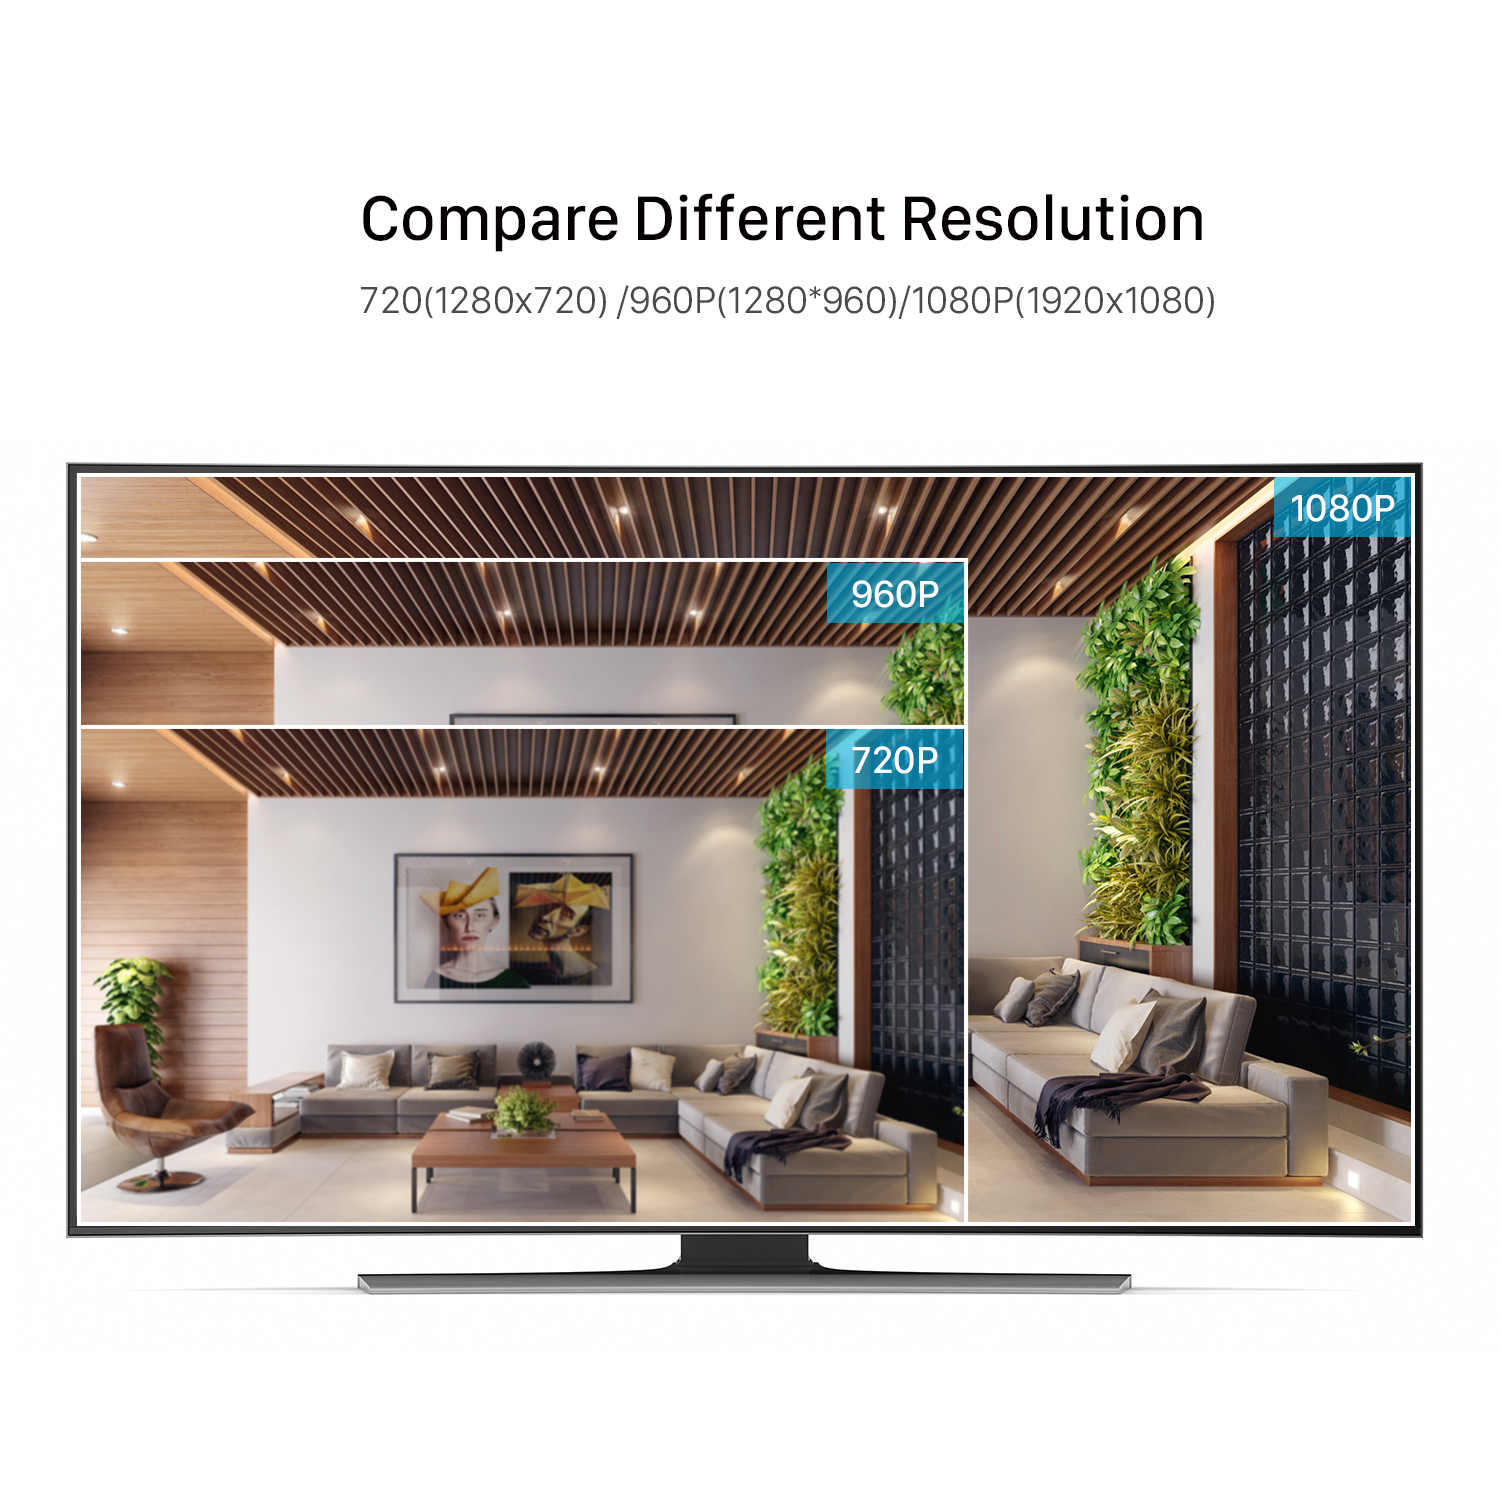 H69580c4529e54da581addab349ccf85aE BESDER iCsee Audio Security IP Camera 1080P Wireless Wired ONVIF CCTV Surveillance Outdoor Wifi Camera With SD Card Slot Max 64G